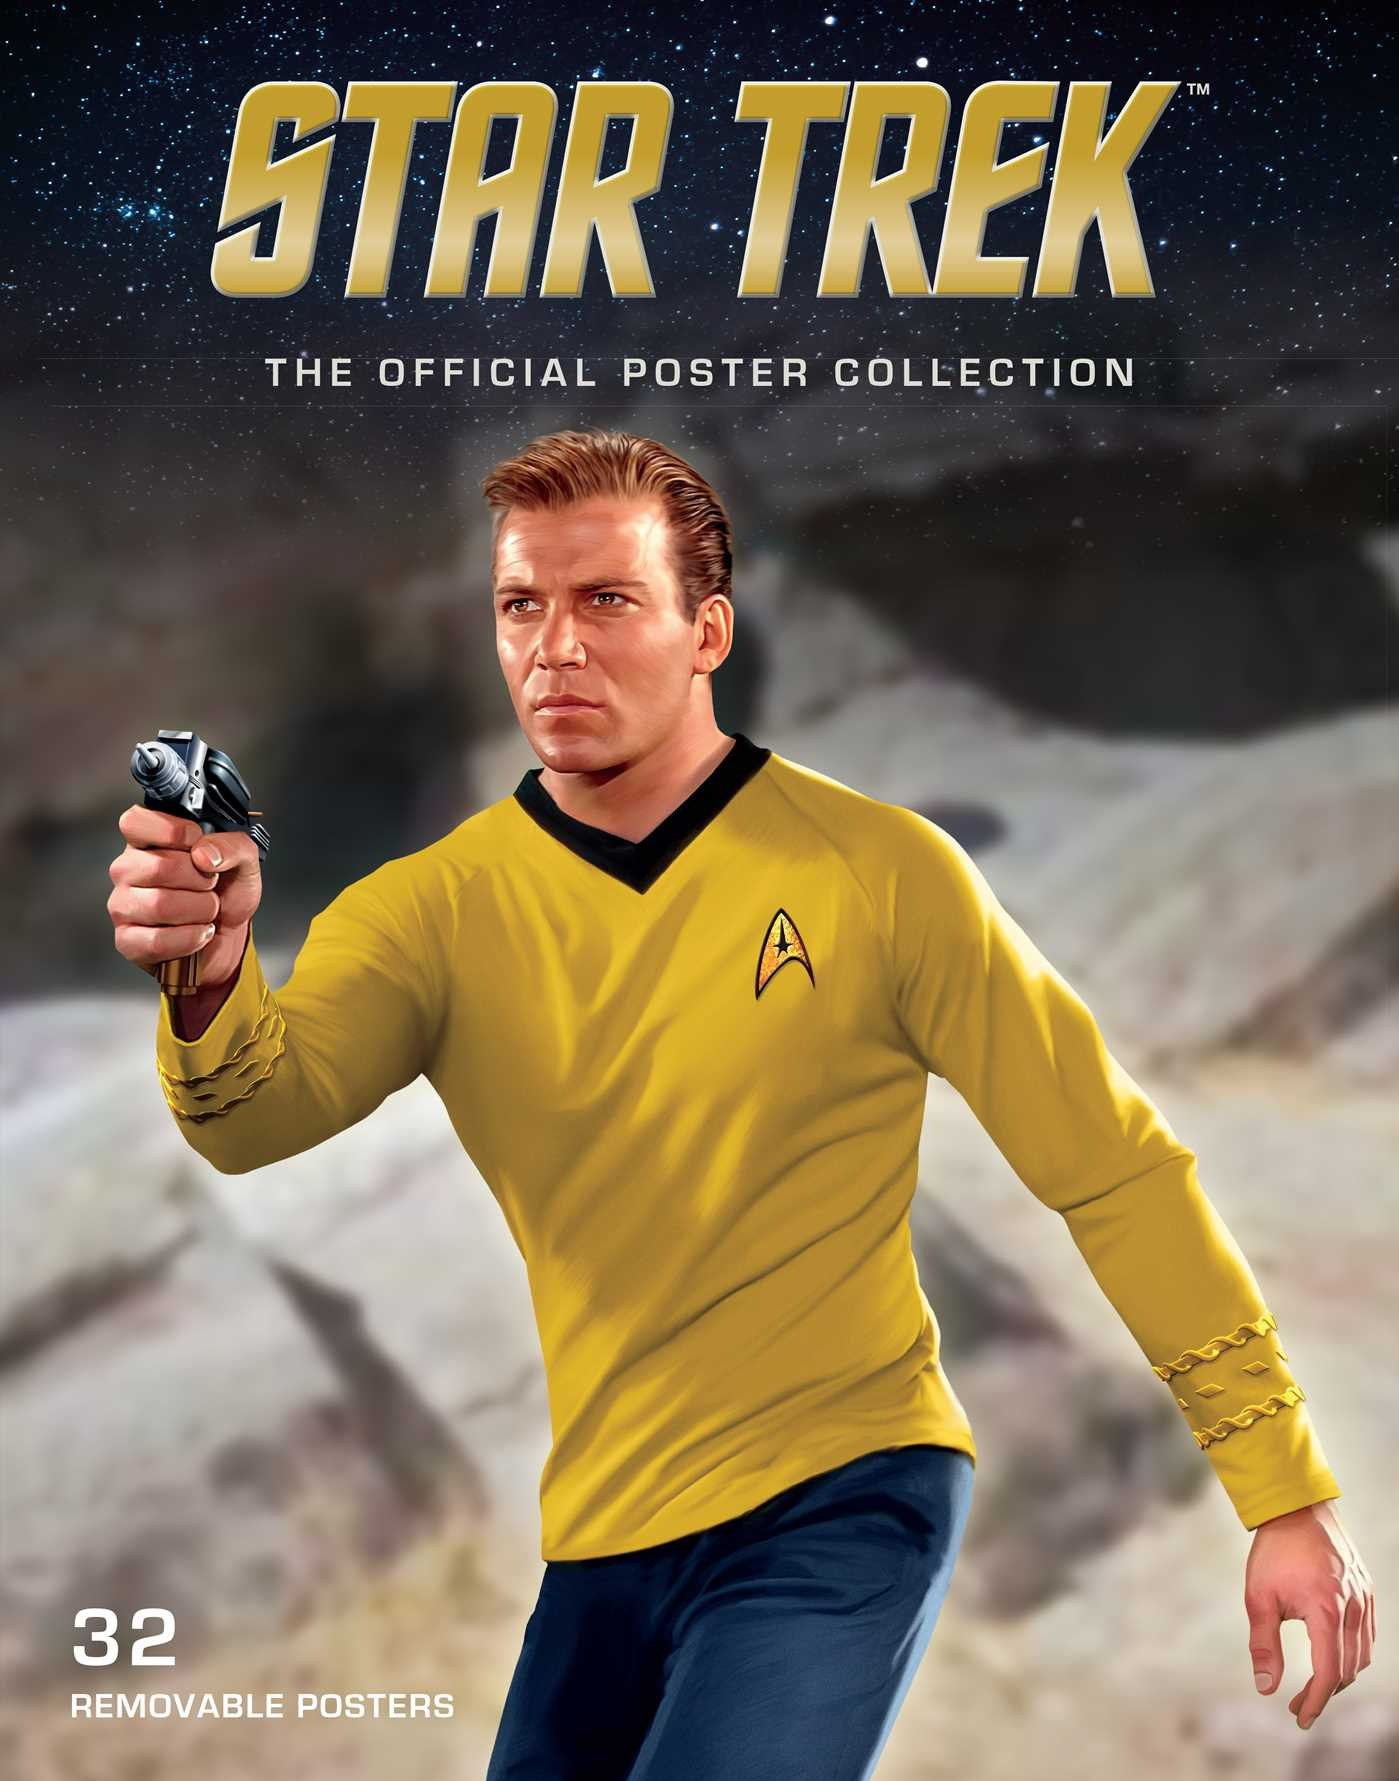 Star Trek The Official Poster Collection cover.jpg